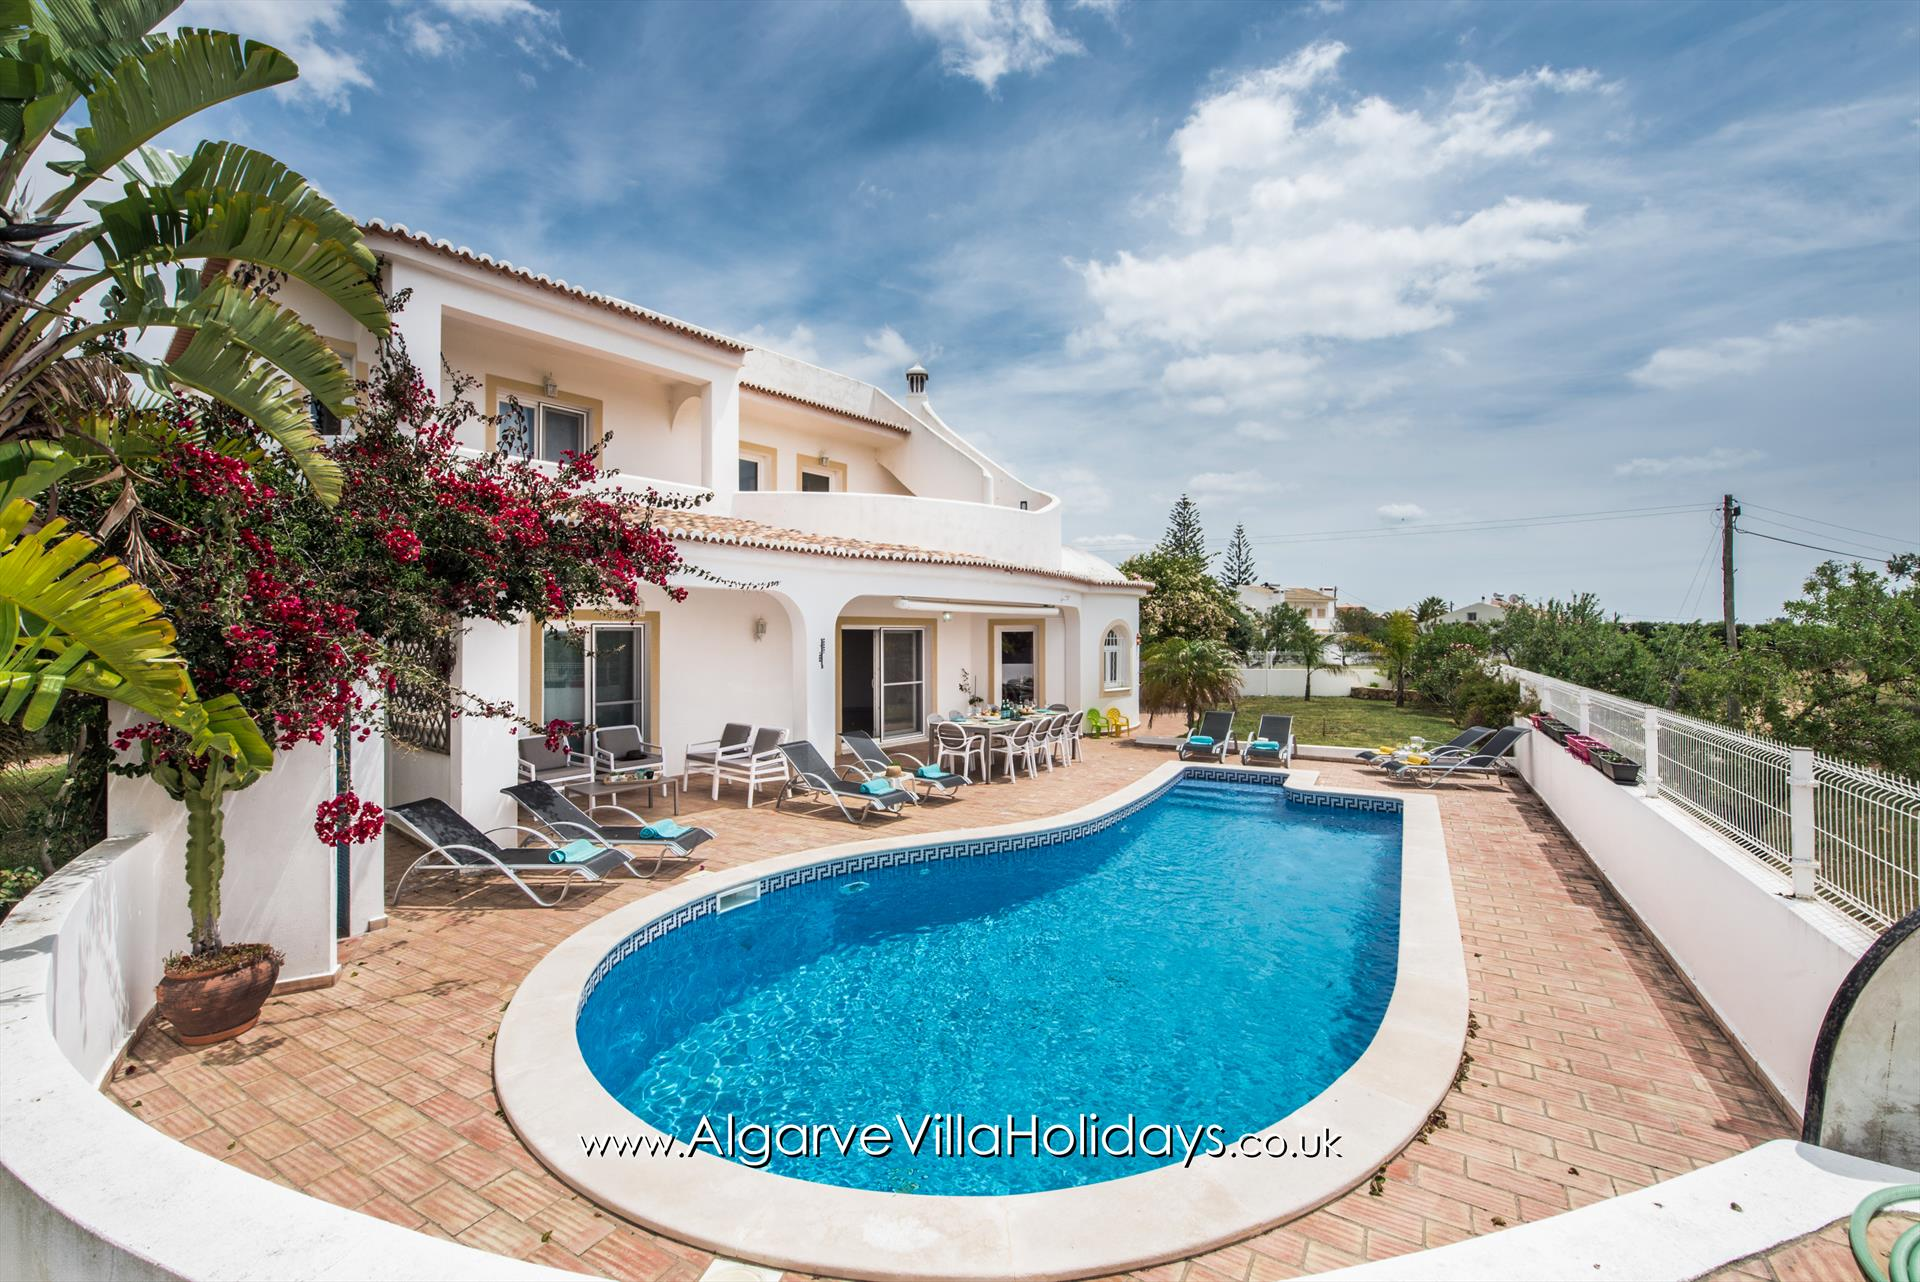 Luz, Lovely and cheerful villa in Guia, on the Algarve, Portugal  with private pool for 8 persons.....